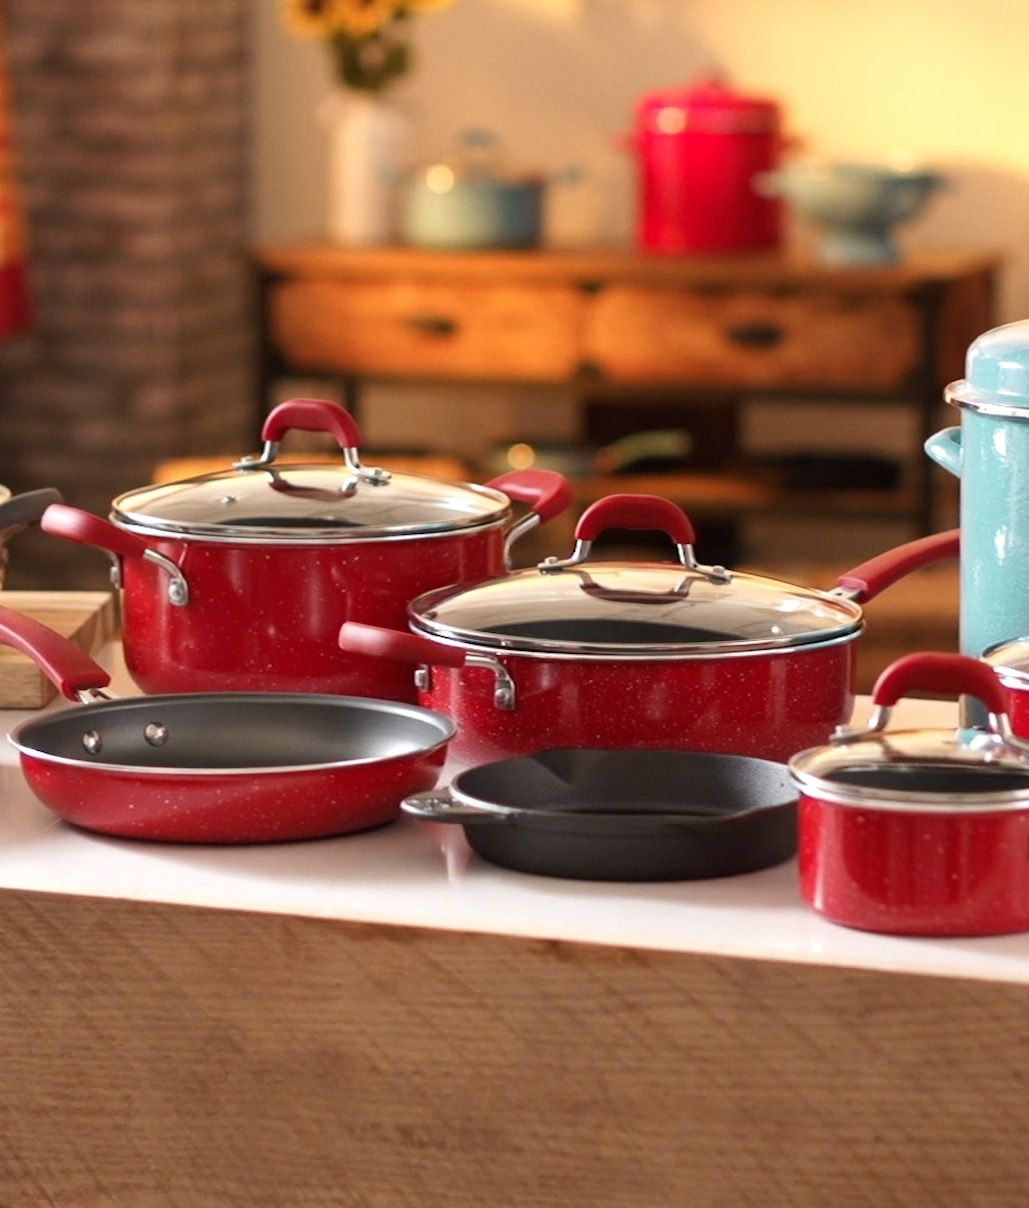 Now You're Cooking! Bring Some Color To Your Kitchen With